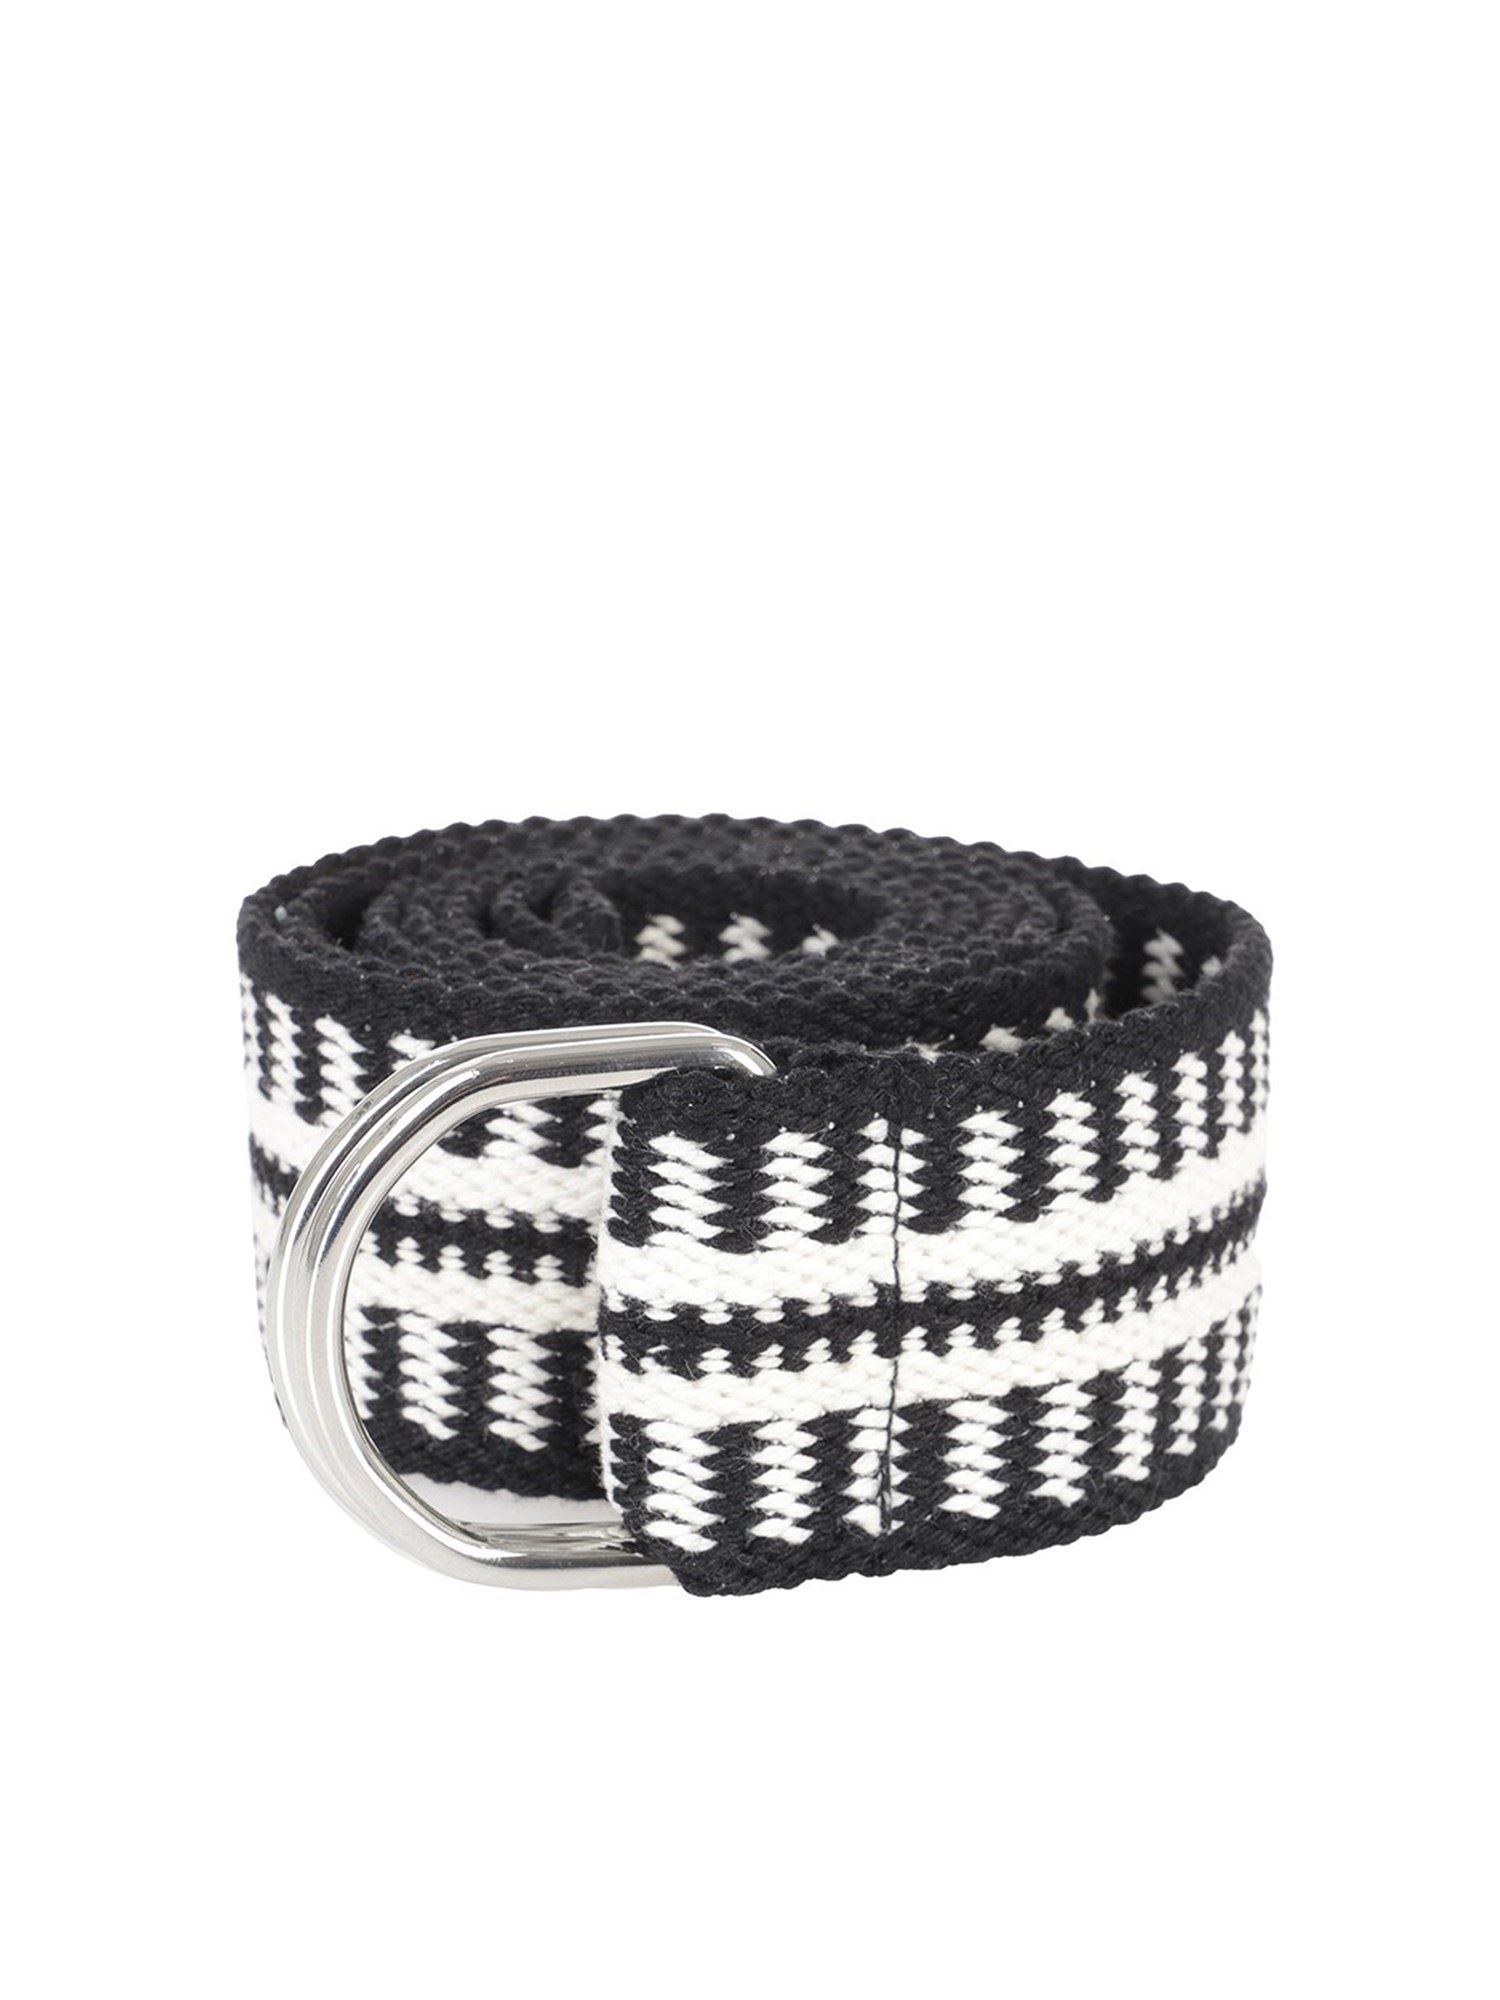 Isabel Marant ISABEL MARANT NYESS BELT IN BLACK